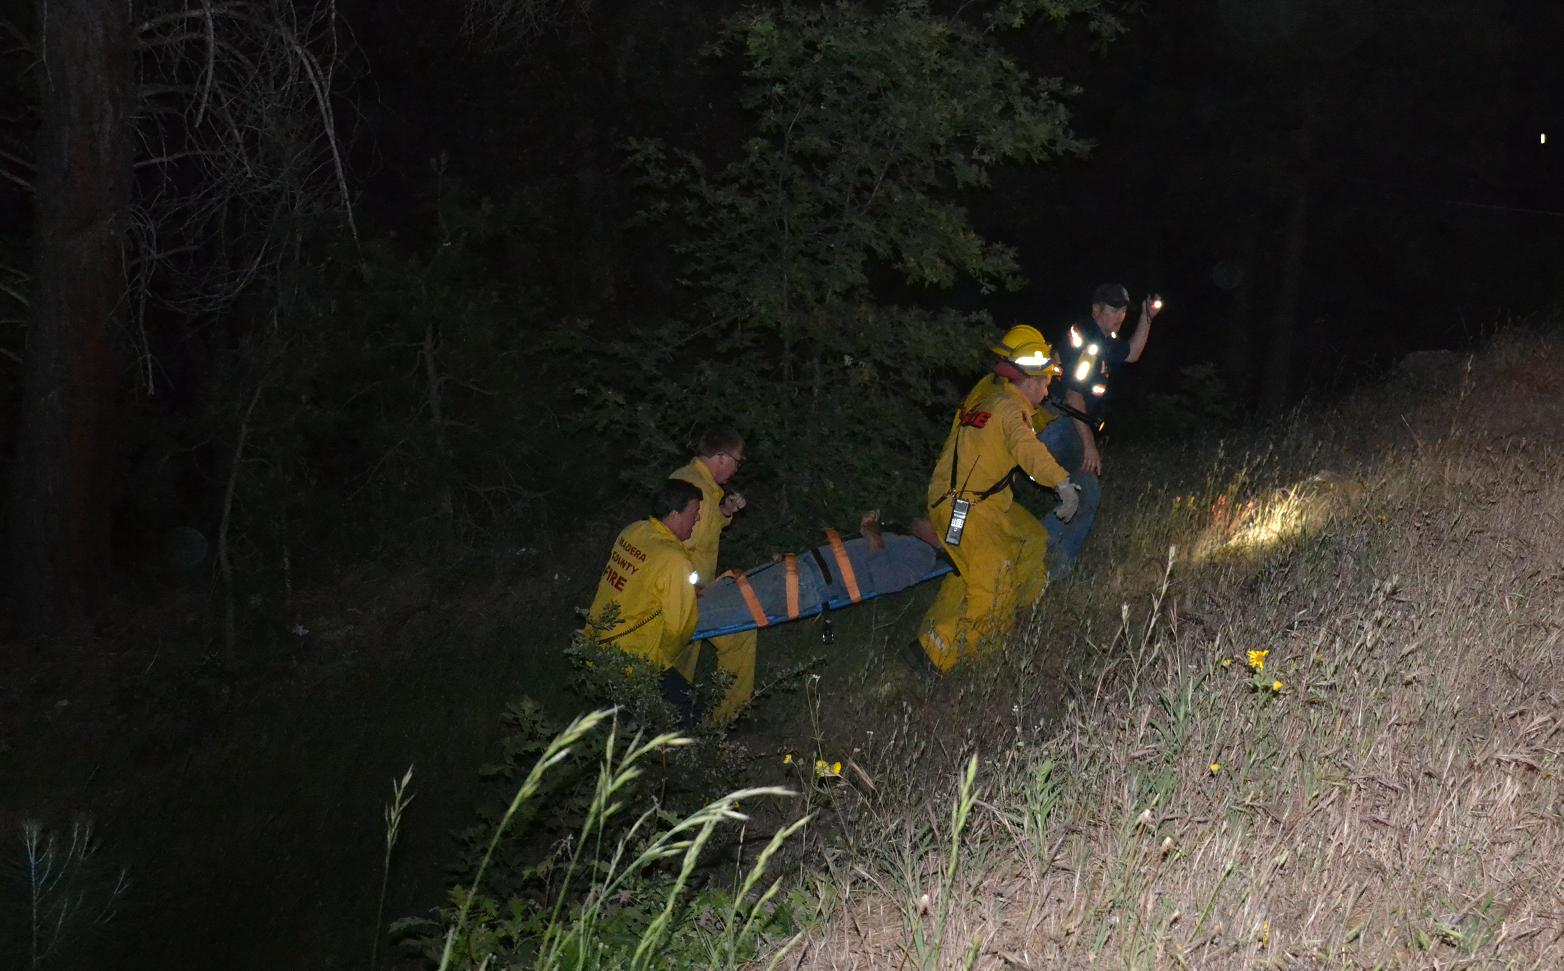 Rescuers carry accident victim up the embankment